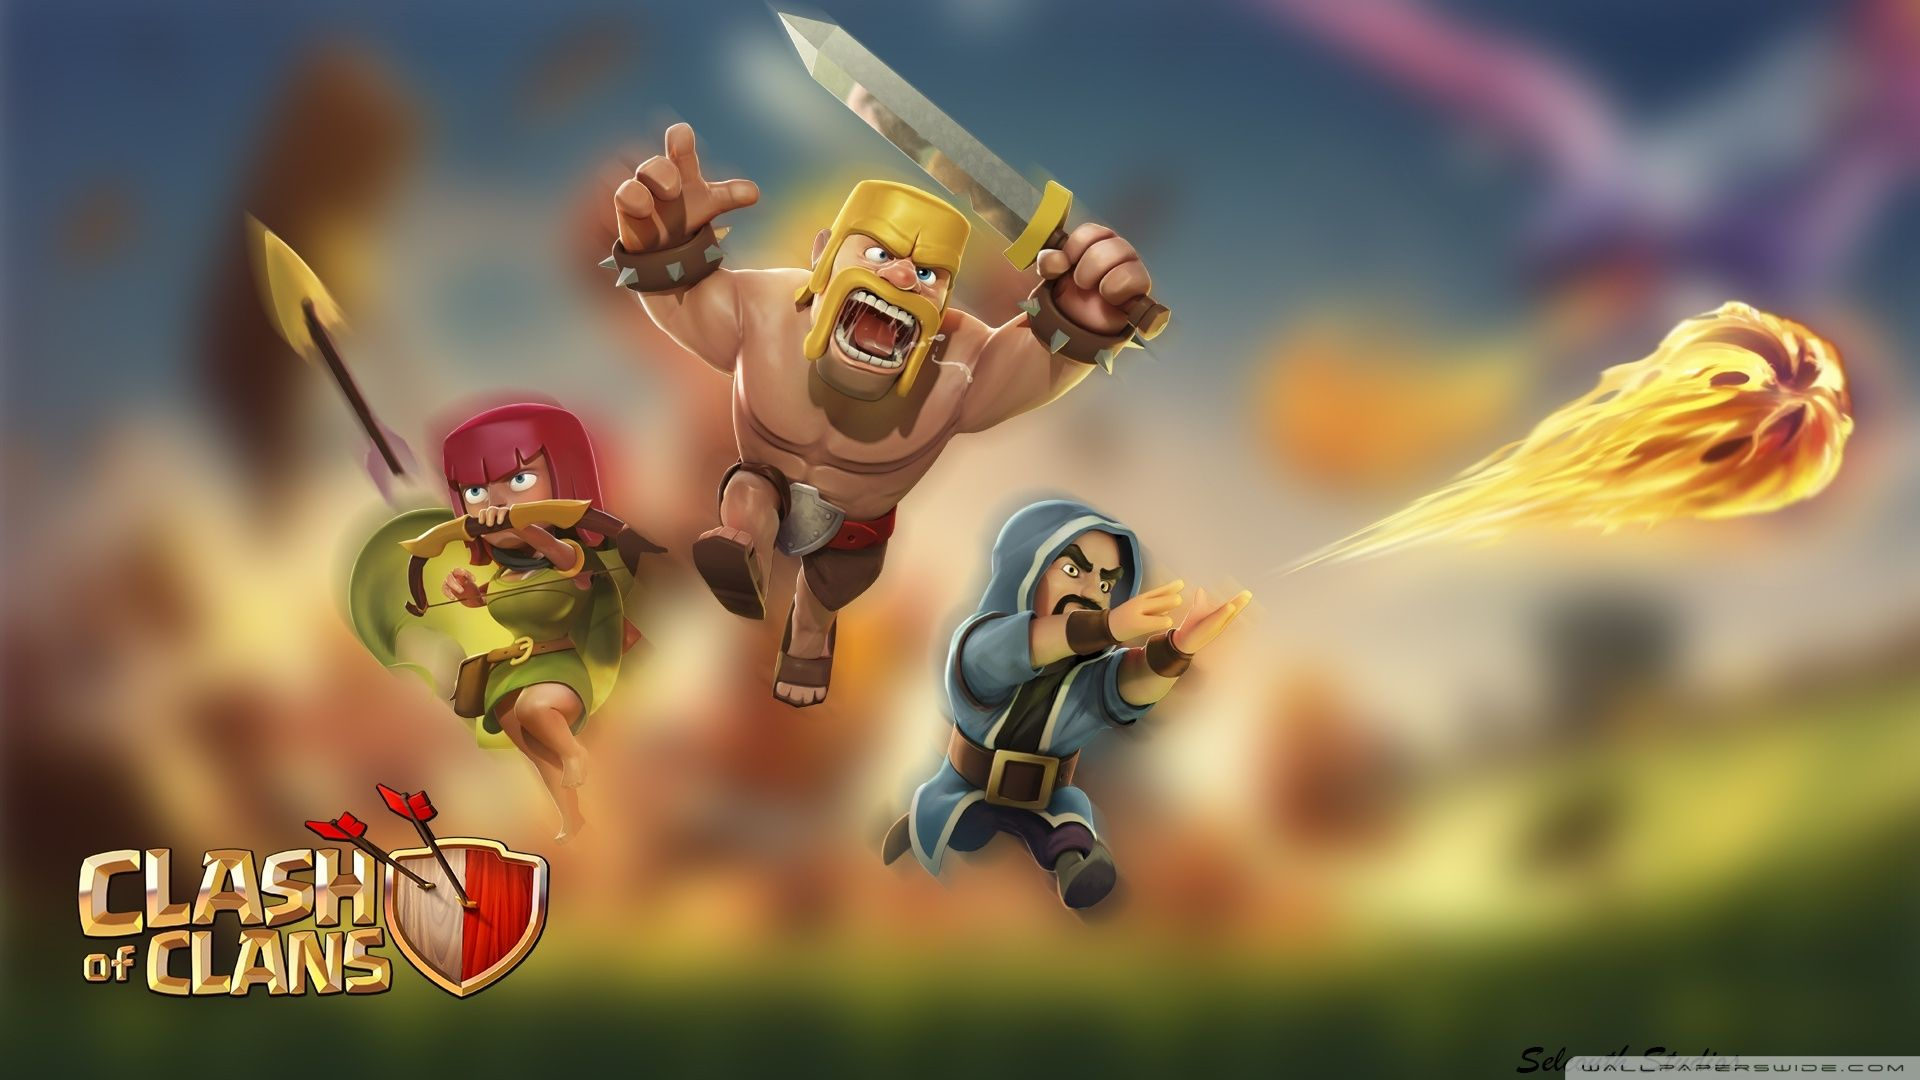 60 Wallpaper HD Android Clash of Clans COC Terbaru 1920x1080